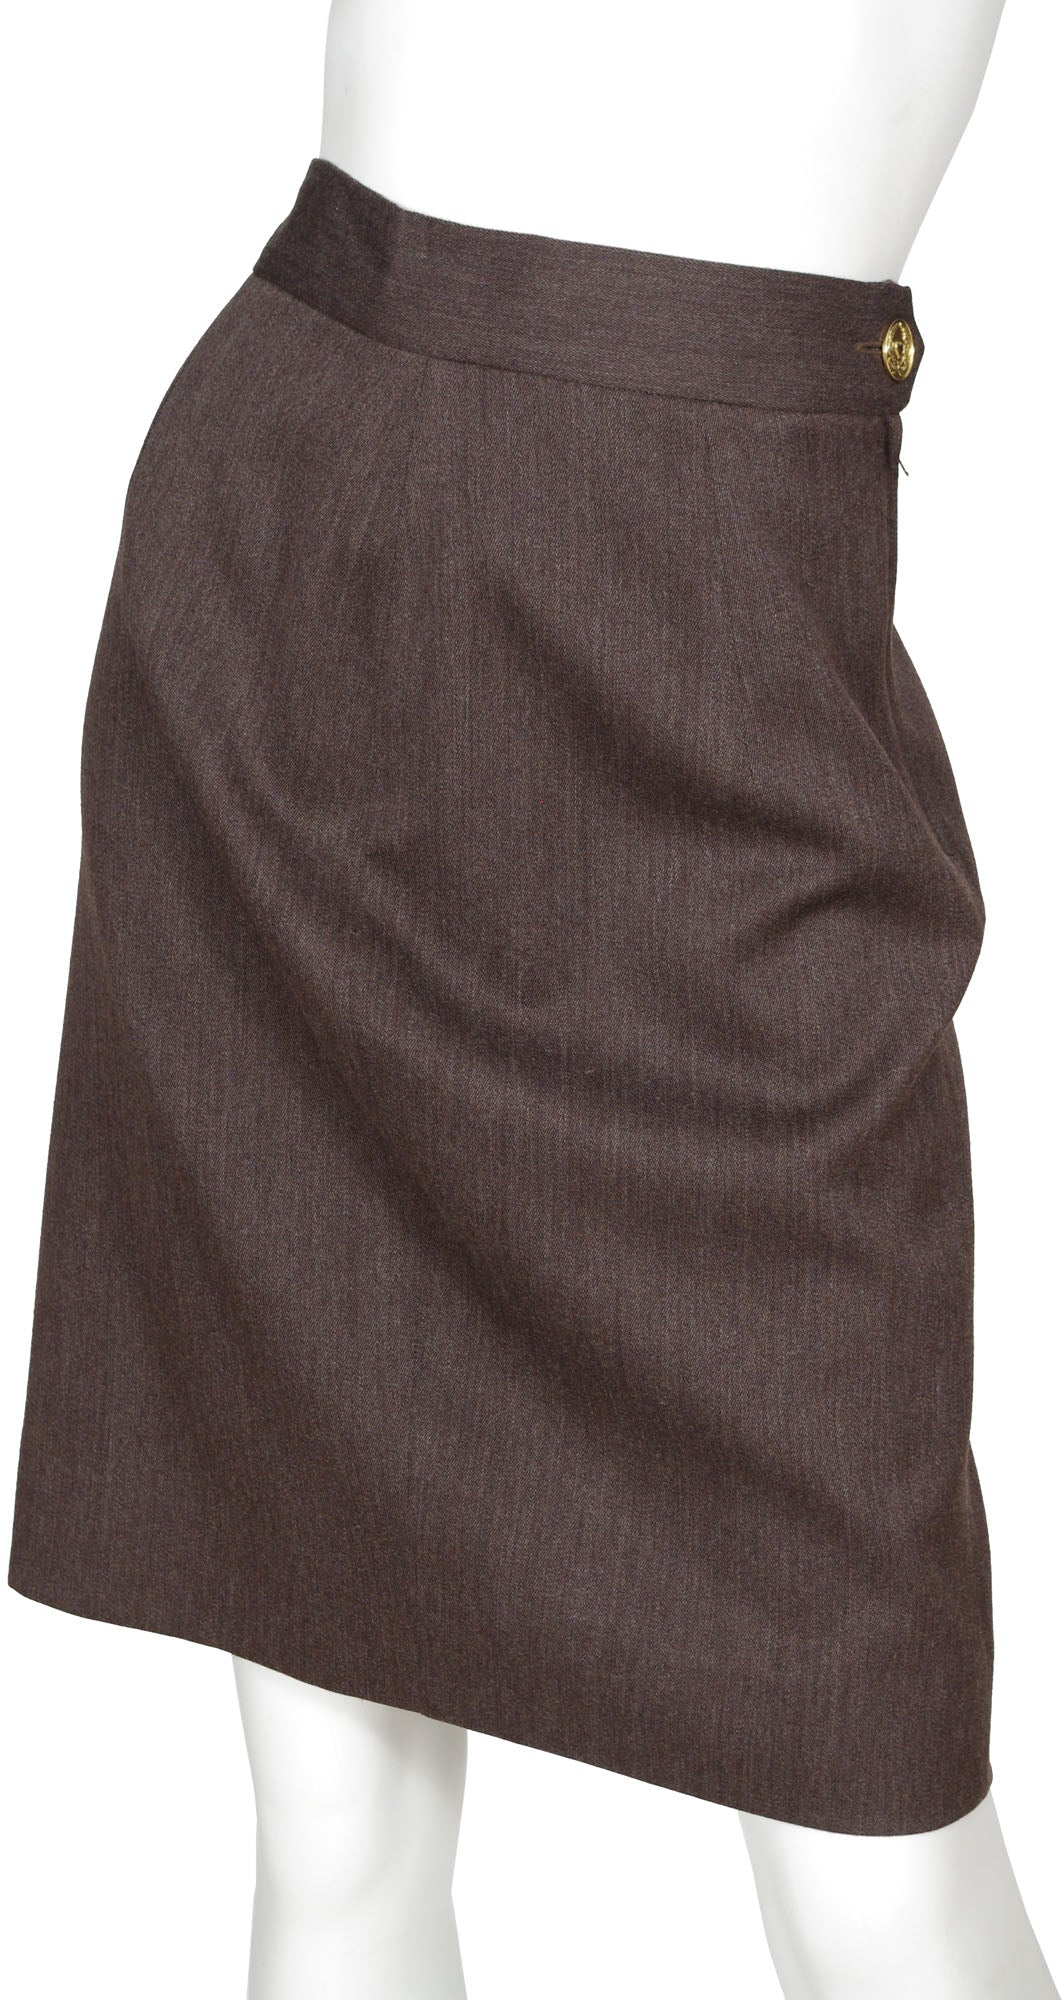 1990s Cheap and Chic Brown Wool Skirt Suit